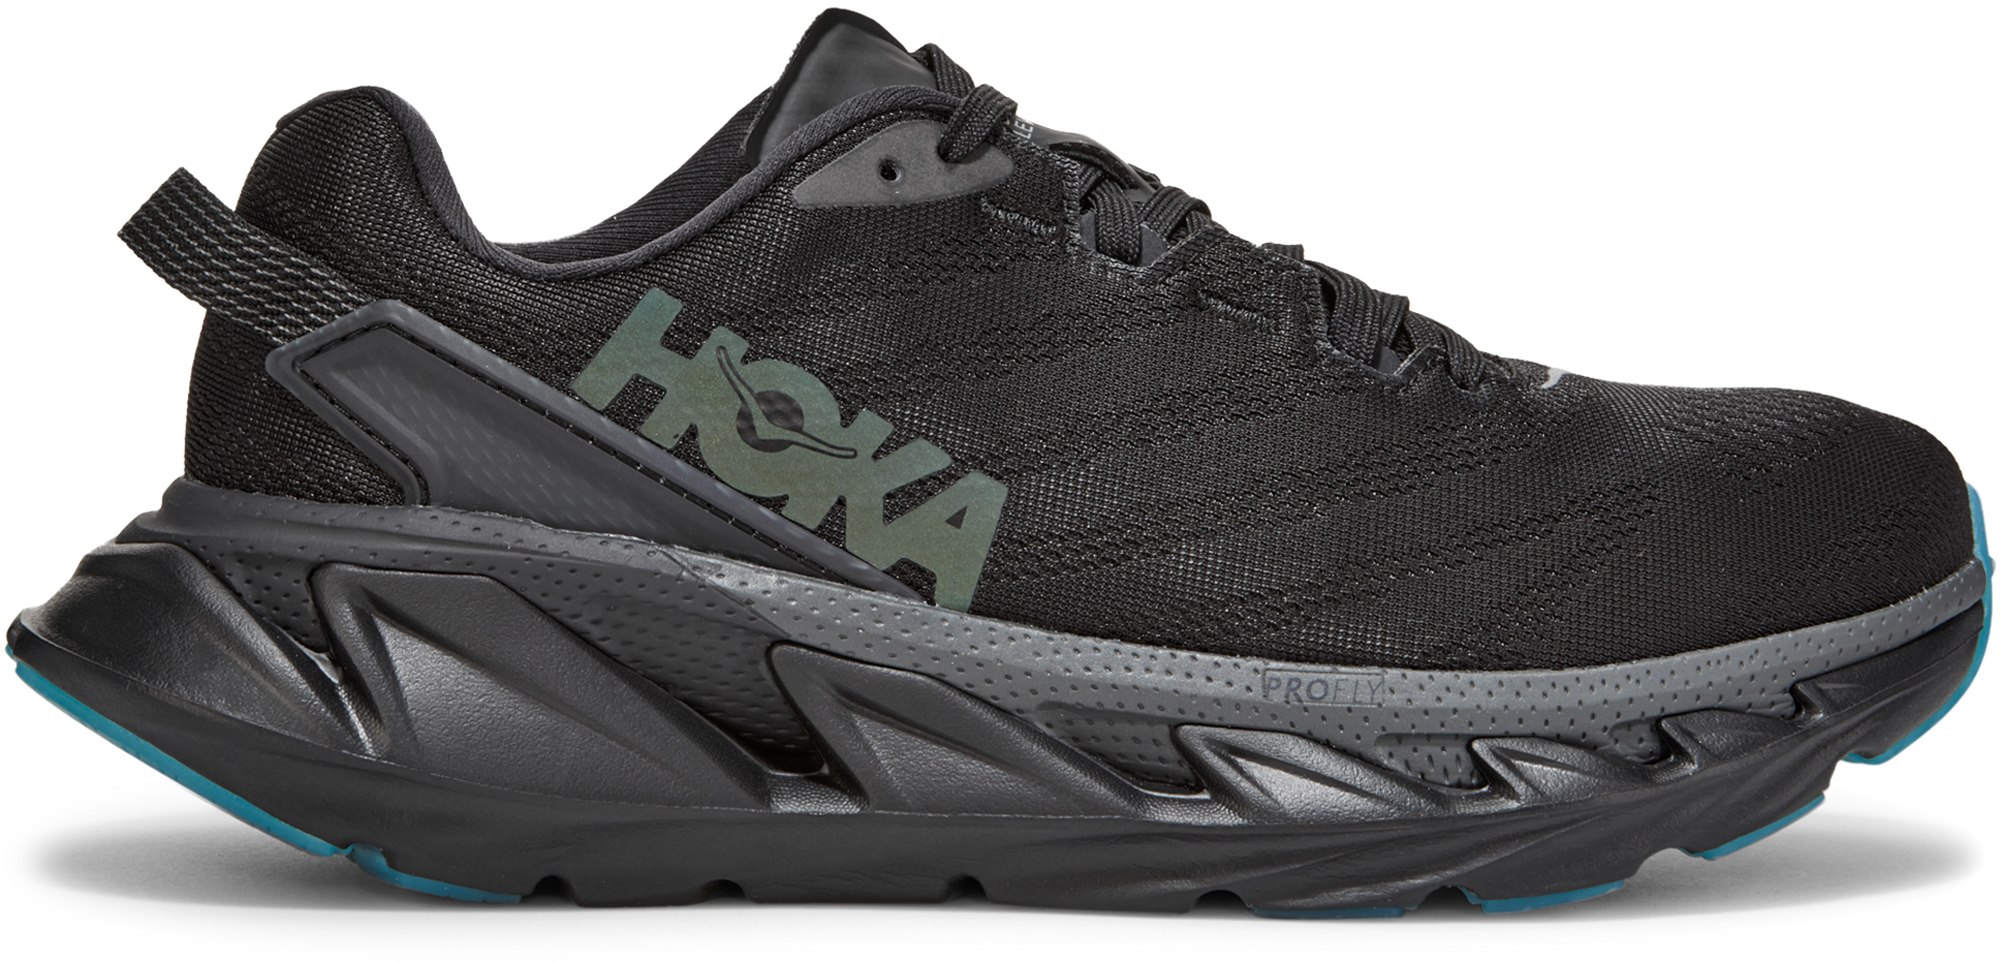 HOKA ONE ONE Кроссовки женские HOKA ONE ONE Elevon 2, размер 37.5 hoka one one women s w conquest running shoe